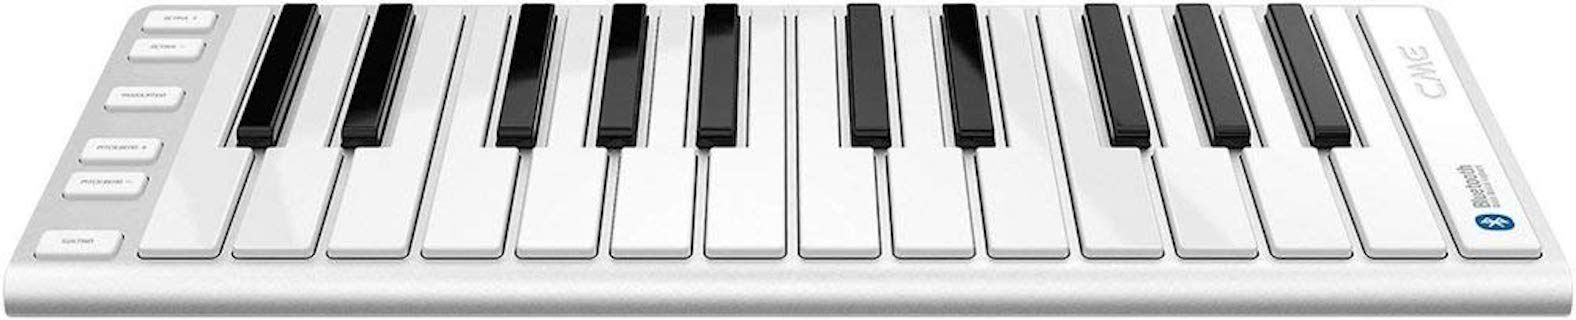 8 Best Piano/Keyboards/MIDI iPad Accessories of 2019